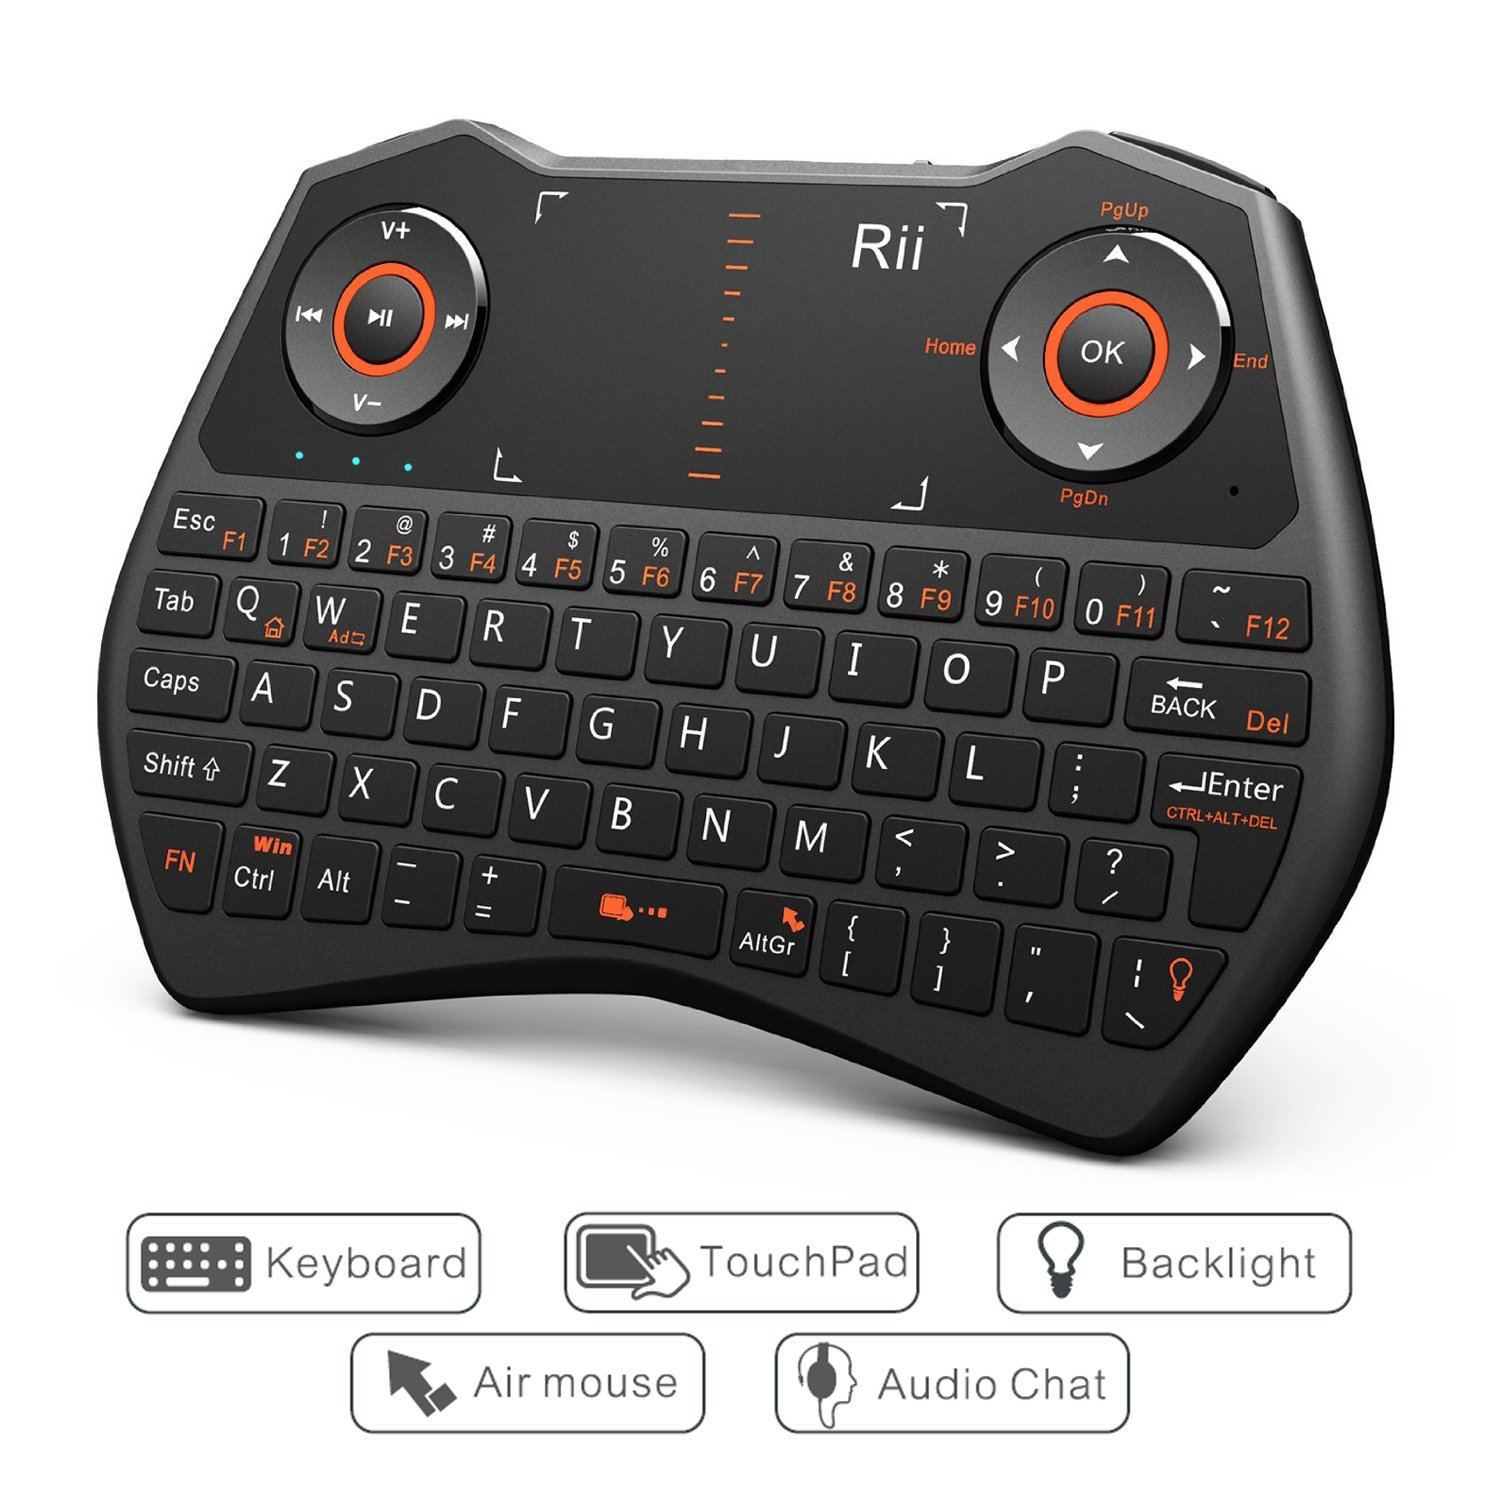 Rii i28 5 in 1 Wireless Mini Keyboard/Touchpad /Flying Mouse/Earphone  Jack/Backlit Work for PC,Raspberry Pi 2 3, Android TV Box,XBMC,Windows 7 8  10